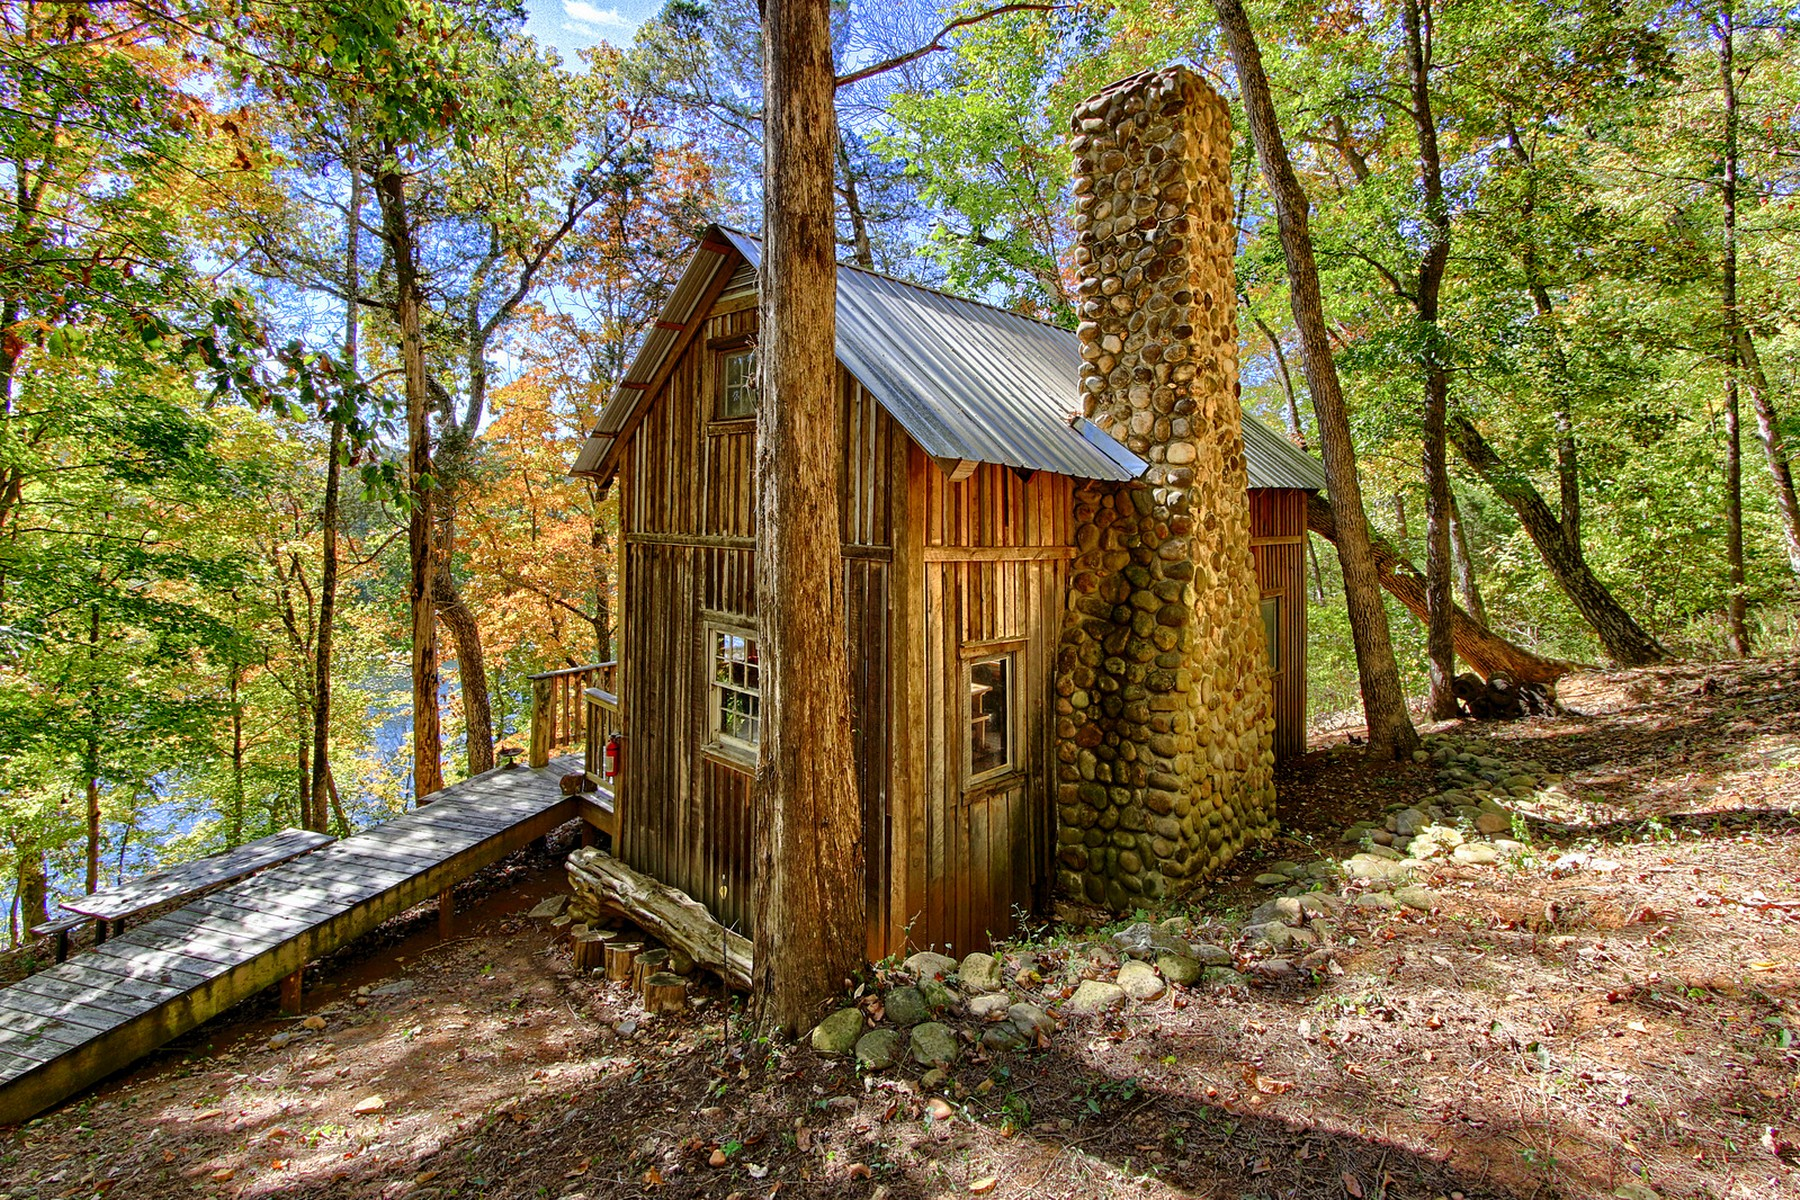 Single Family Home for Sale at Historic Cabin on the French Broad River 949 River Road Kodak, Tennessee 37764 United States